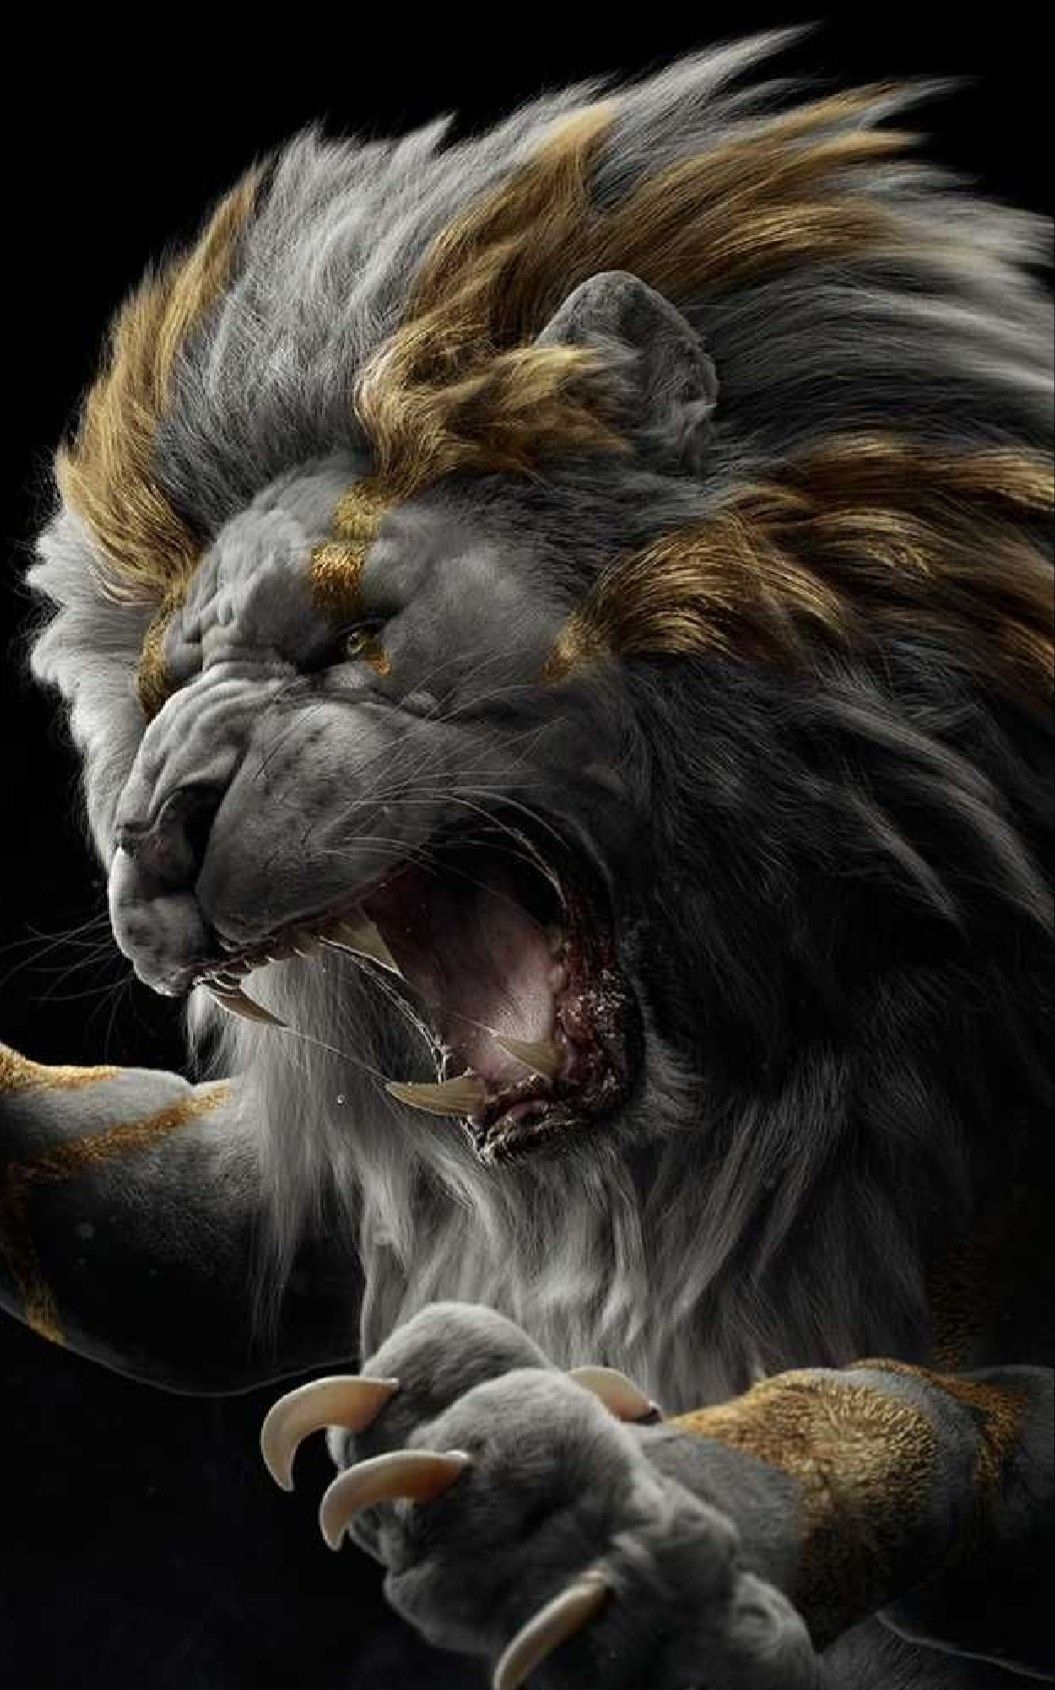 Pin by Iris Phillips on Fantasy 1 in 2020 Lion wallpaper